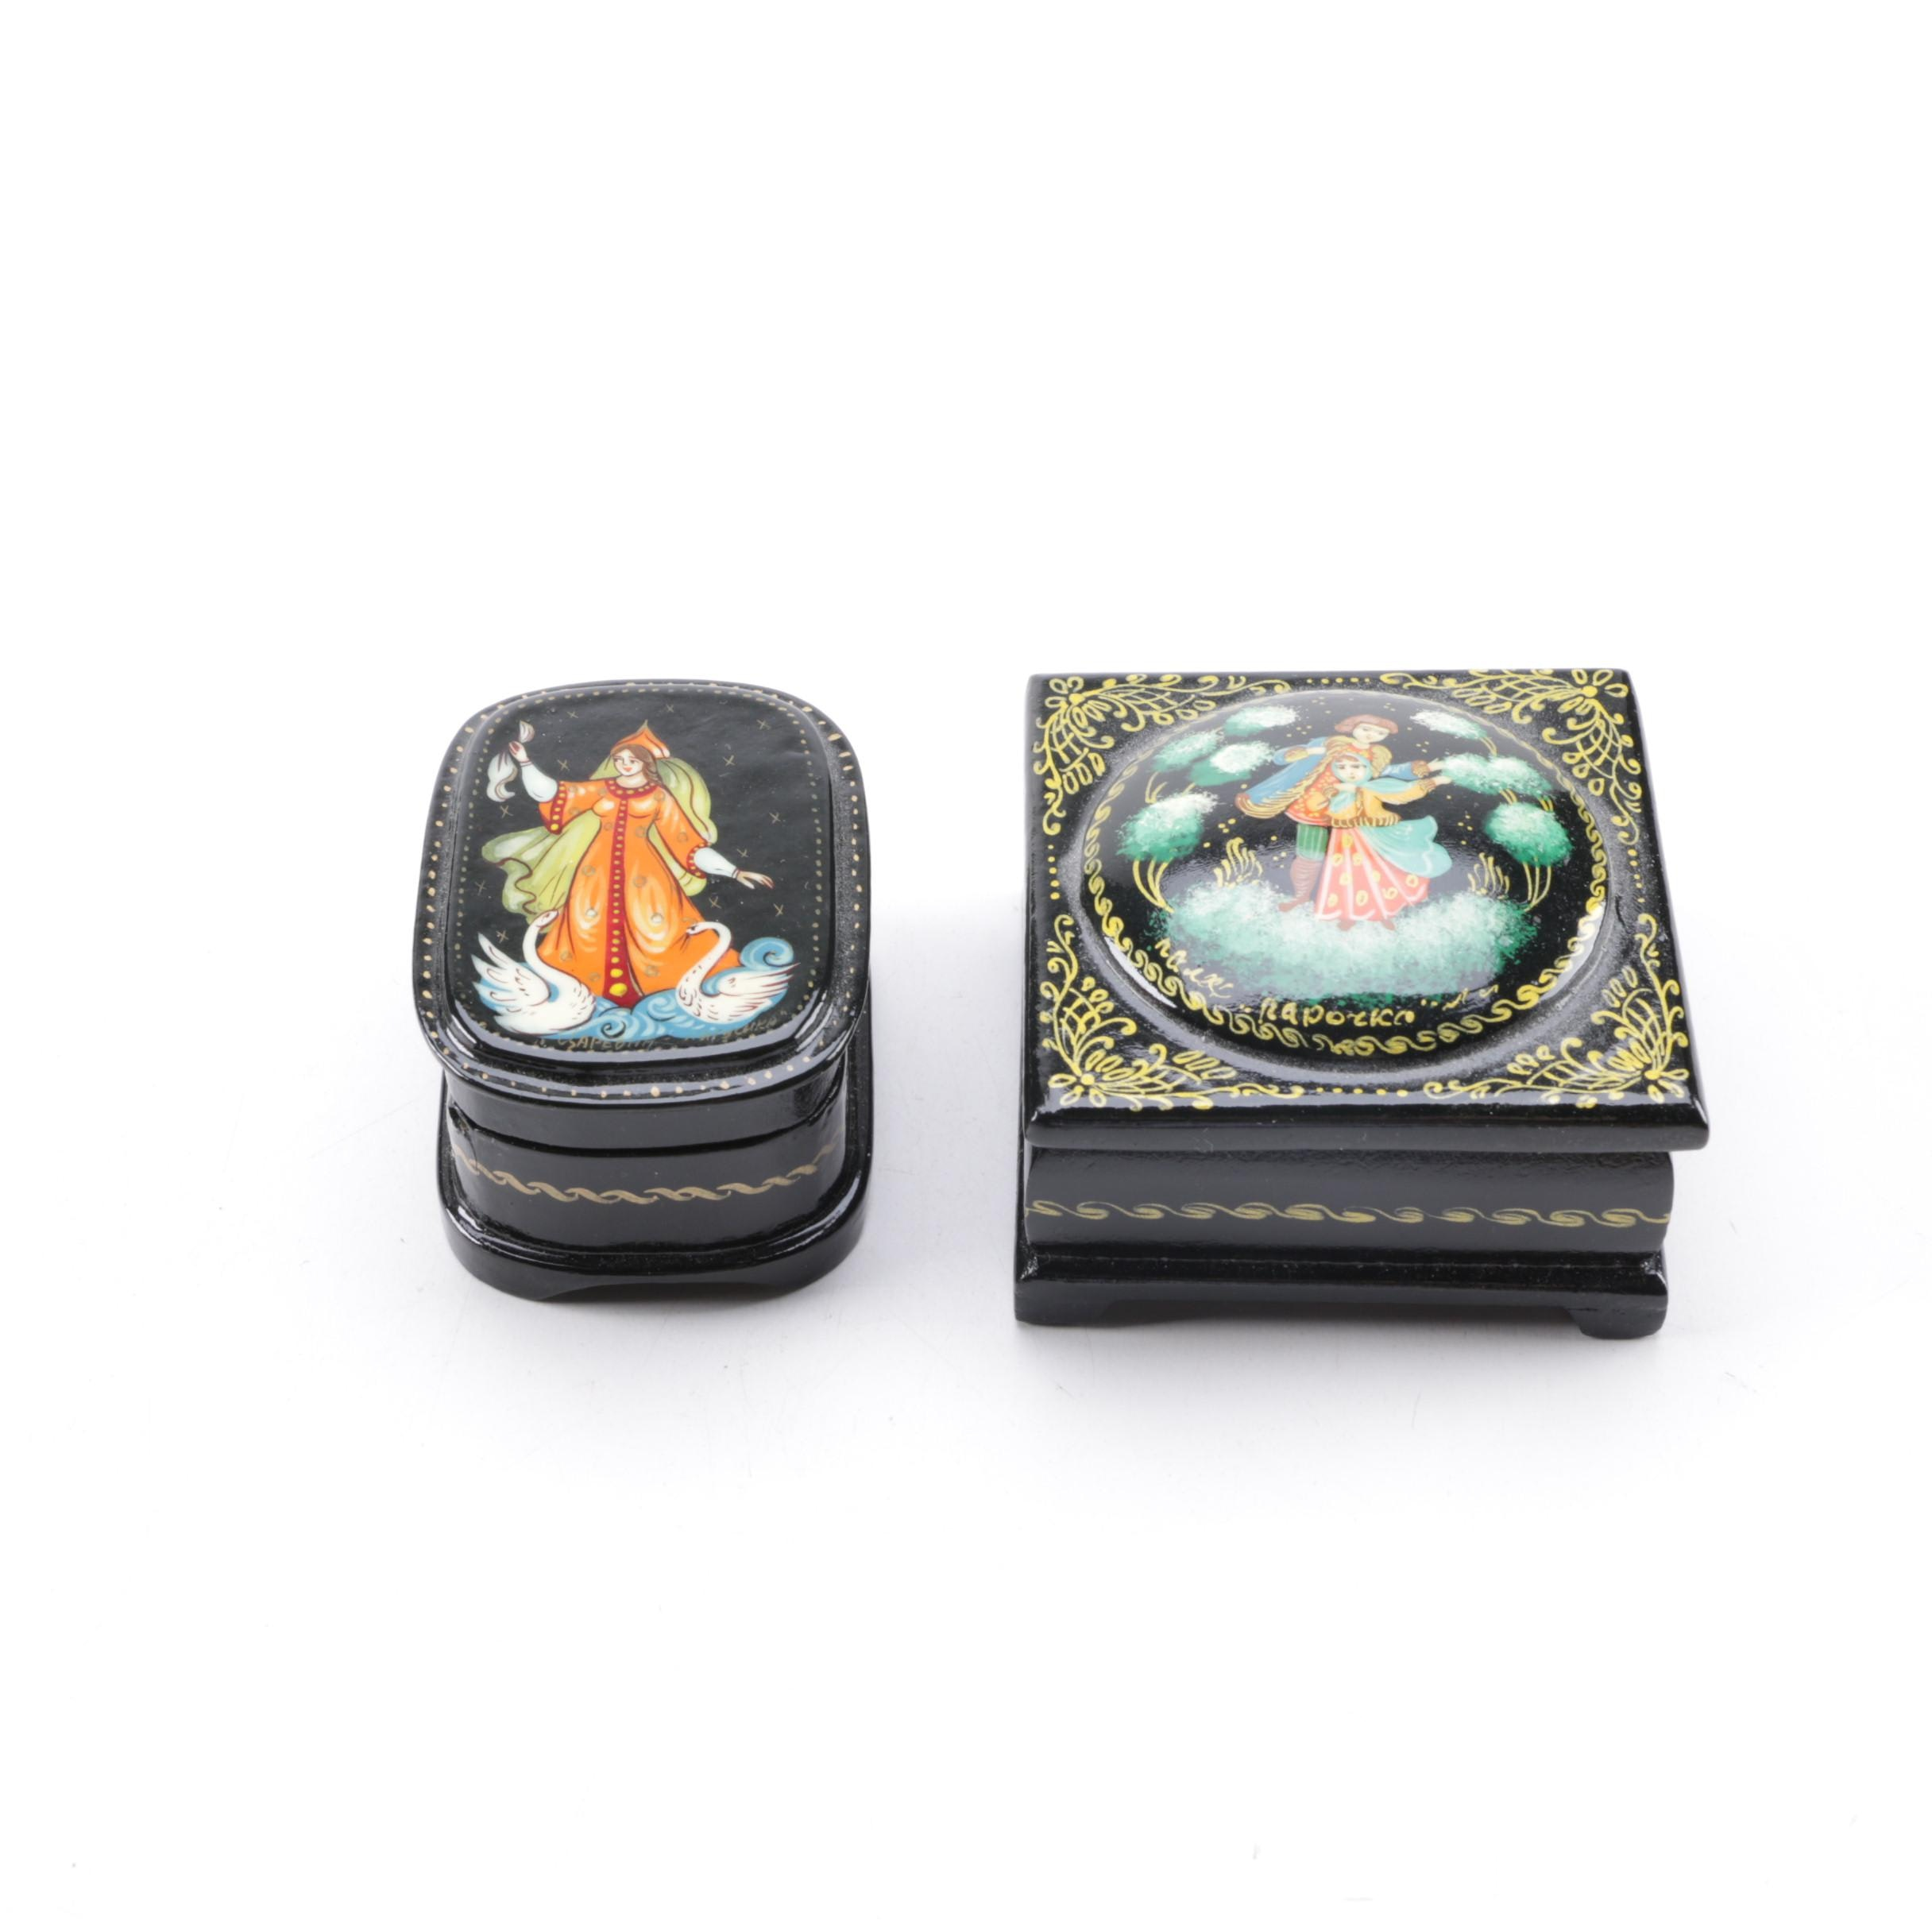 A Pair of Black Lacquer Russian Trinket Boxes